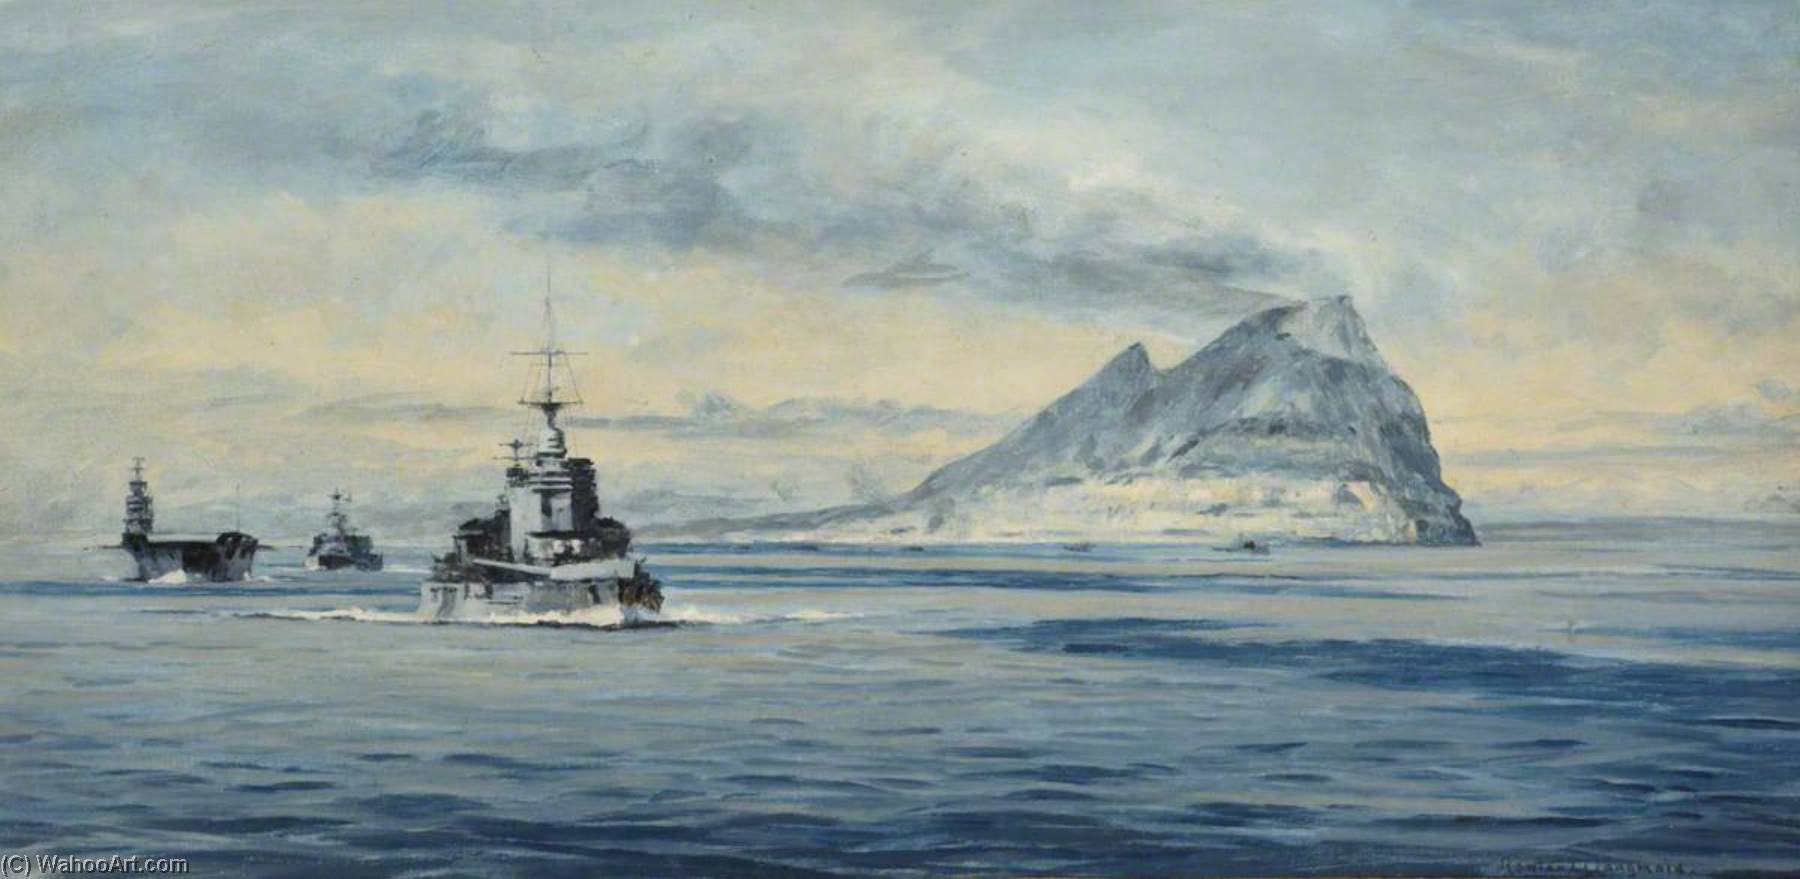 Force H off Gibraltar, 1940, Oil On Canvas by Rowland Langmaid